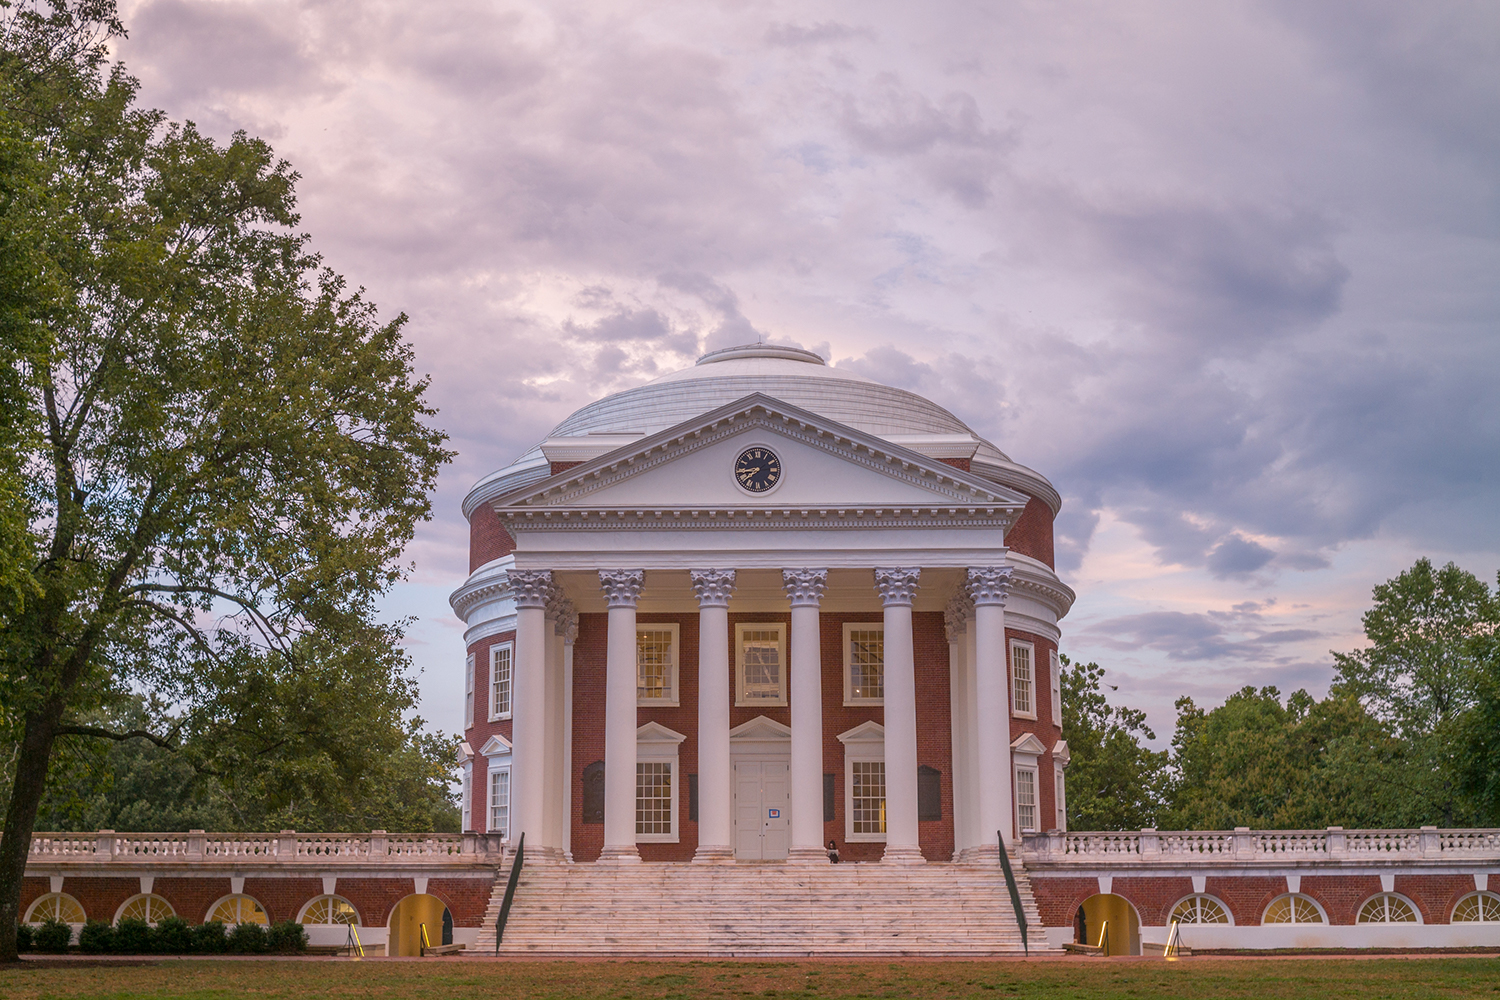 U.S. News '19 Rankings Rate UVA No. 3 Public, and No. 2 Best Value Among Publics